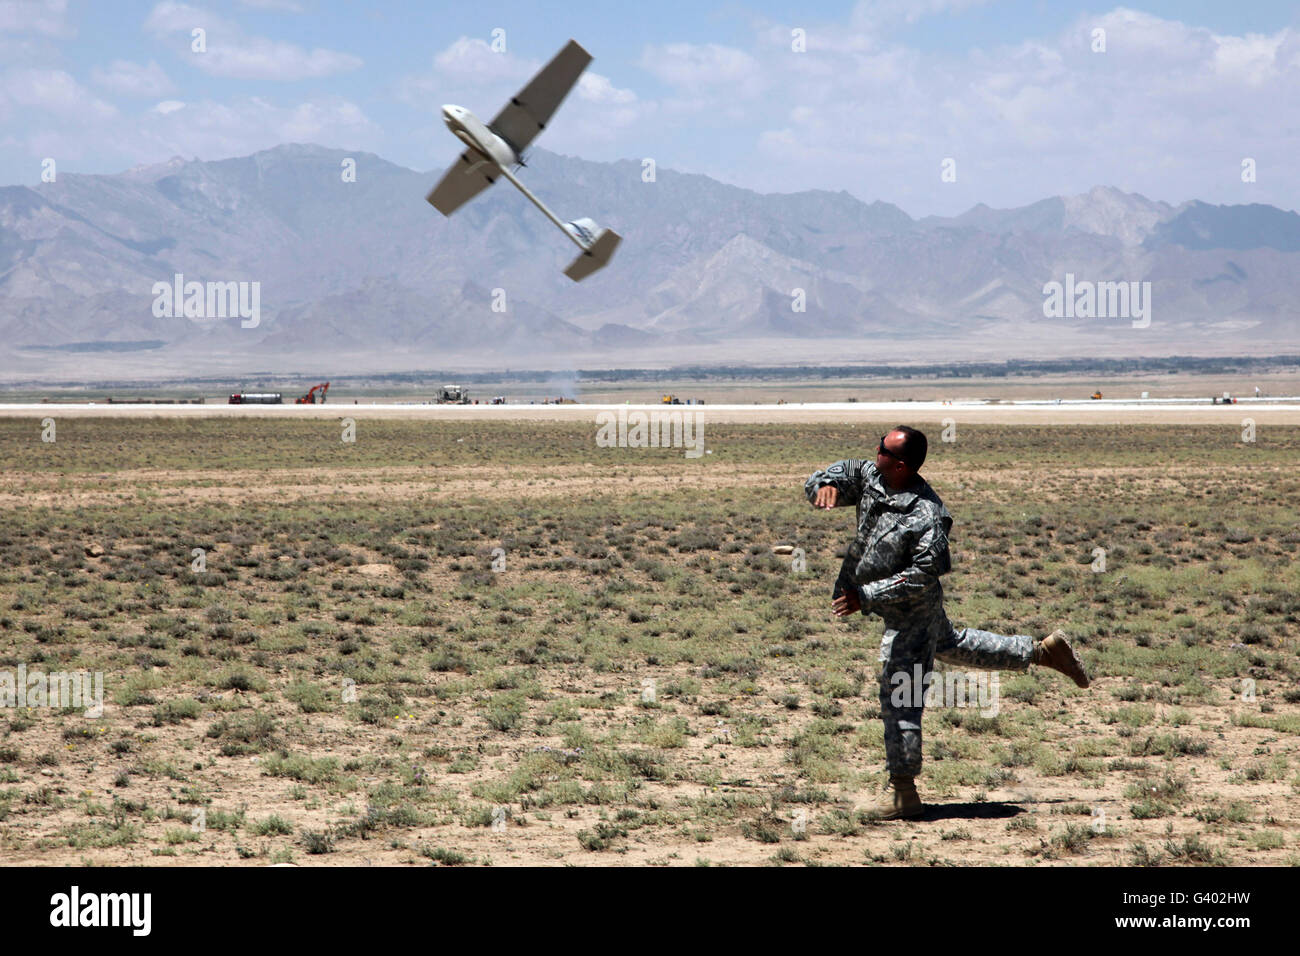 U.S. Army soldier launches an RQ-11 Raven unmanned aerial vehicle. - Stock Image